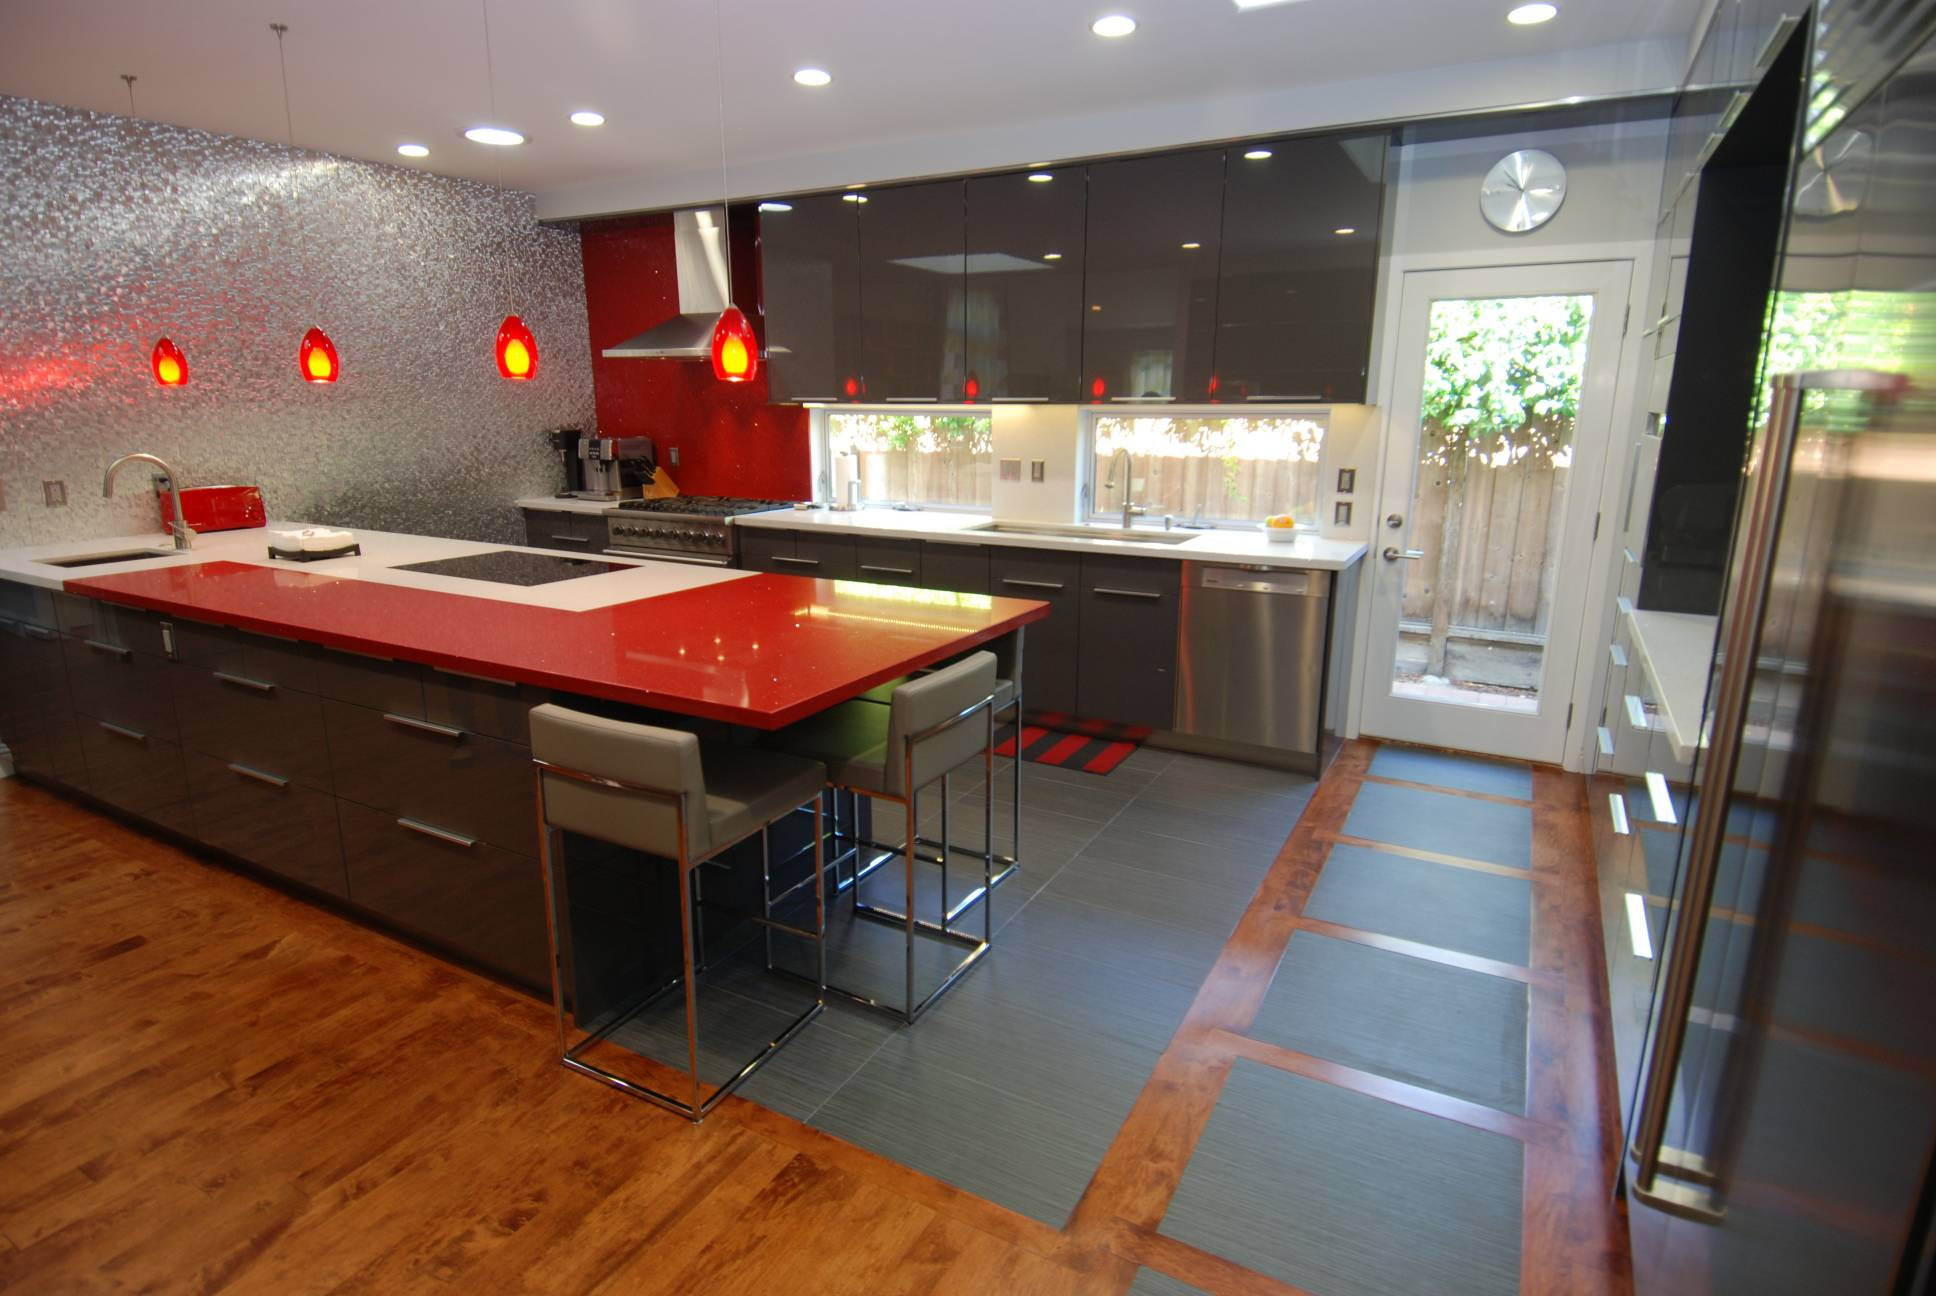 Modern kitchen red grey countertops cabinetry hanging lamps, interior design, Los Altos